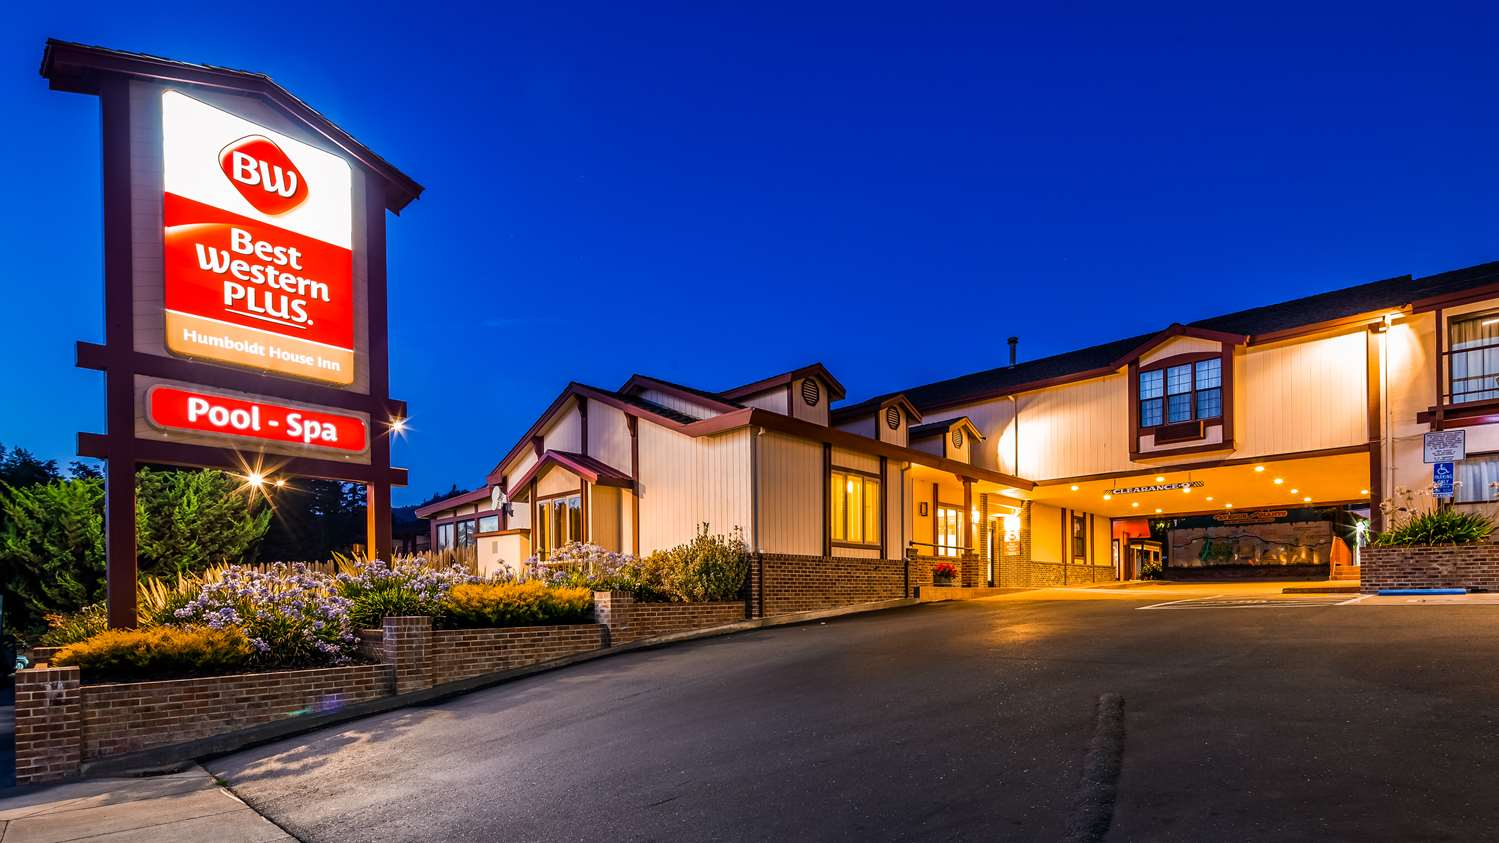 Exterior view - Best Western Plus Humboldt House Inn Garberville